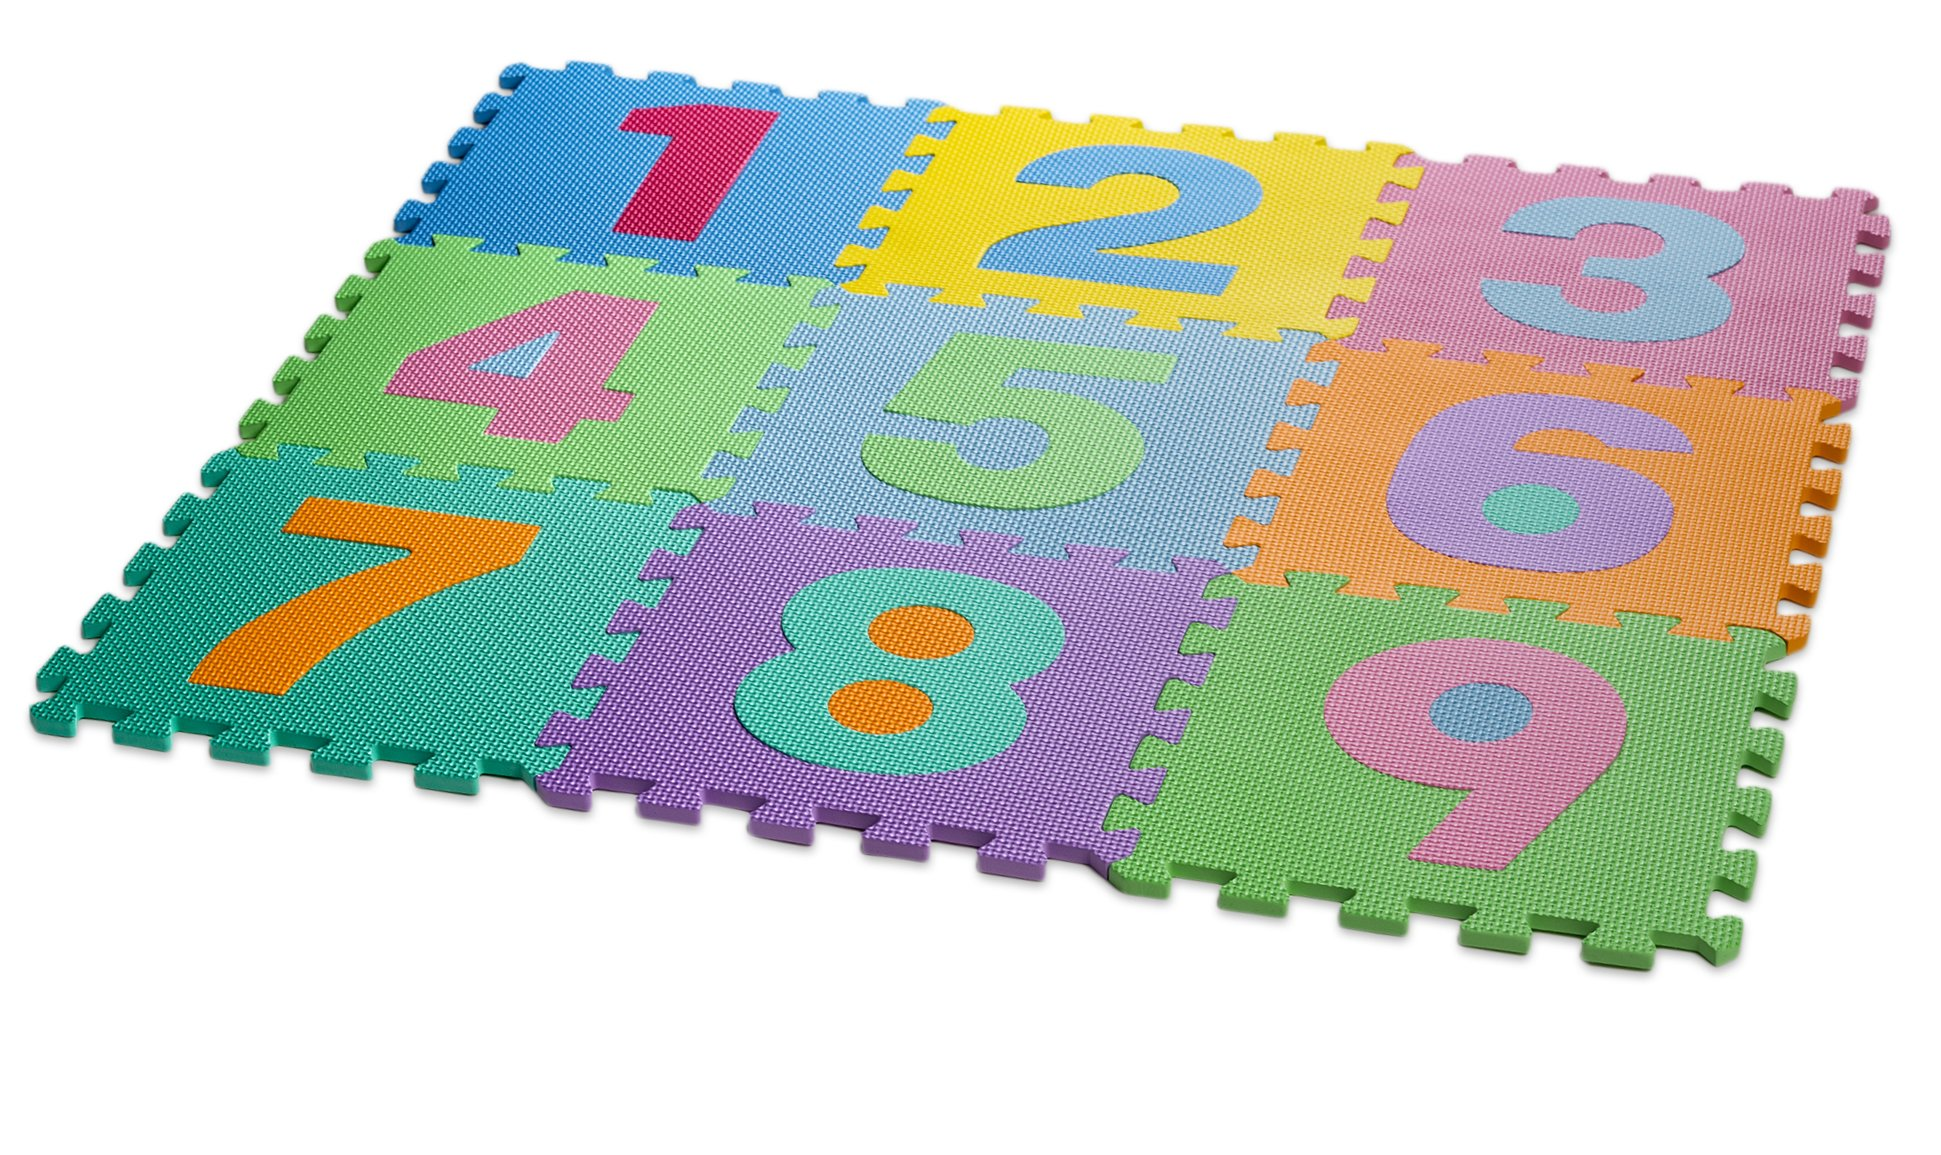 HemingWeigh Kid's Multicolored Numbers Puzzle Play Mat - Soft and Safe EVA Foam - Excellent for Day Care's, Play Rooms, Baby rooms, and playgrounds